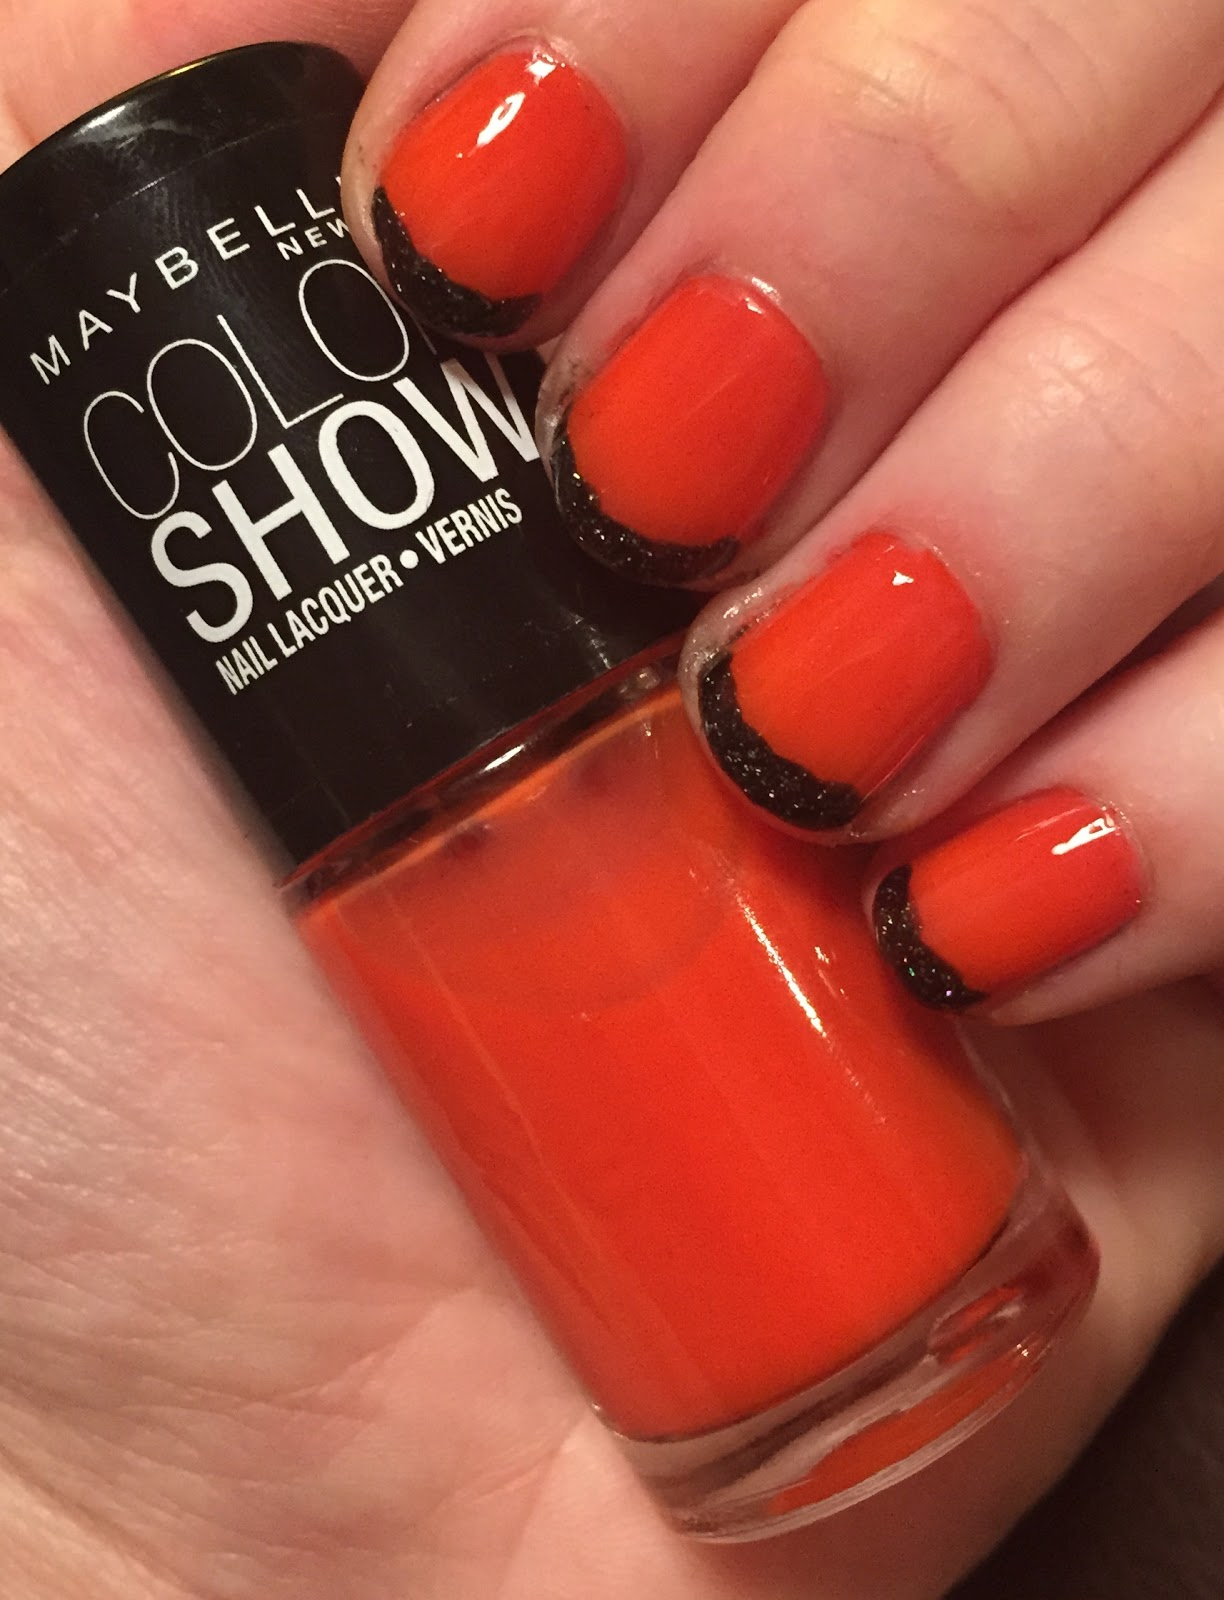 The Beauty Of Life: Happy Halloween! Orange & Black French